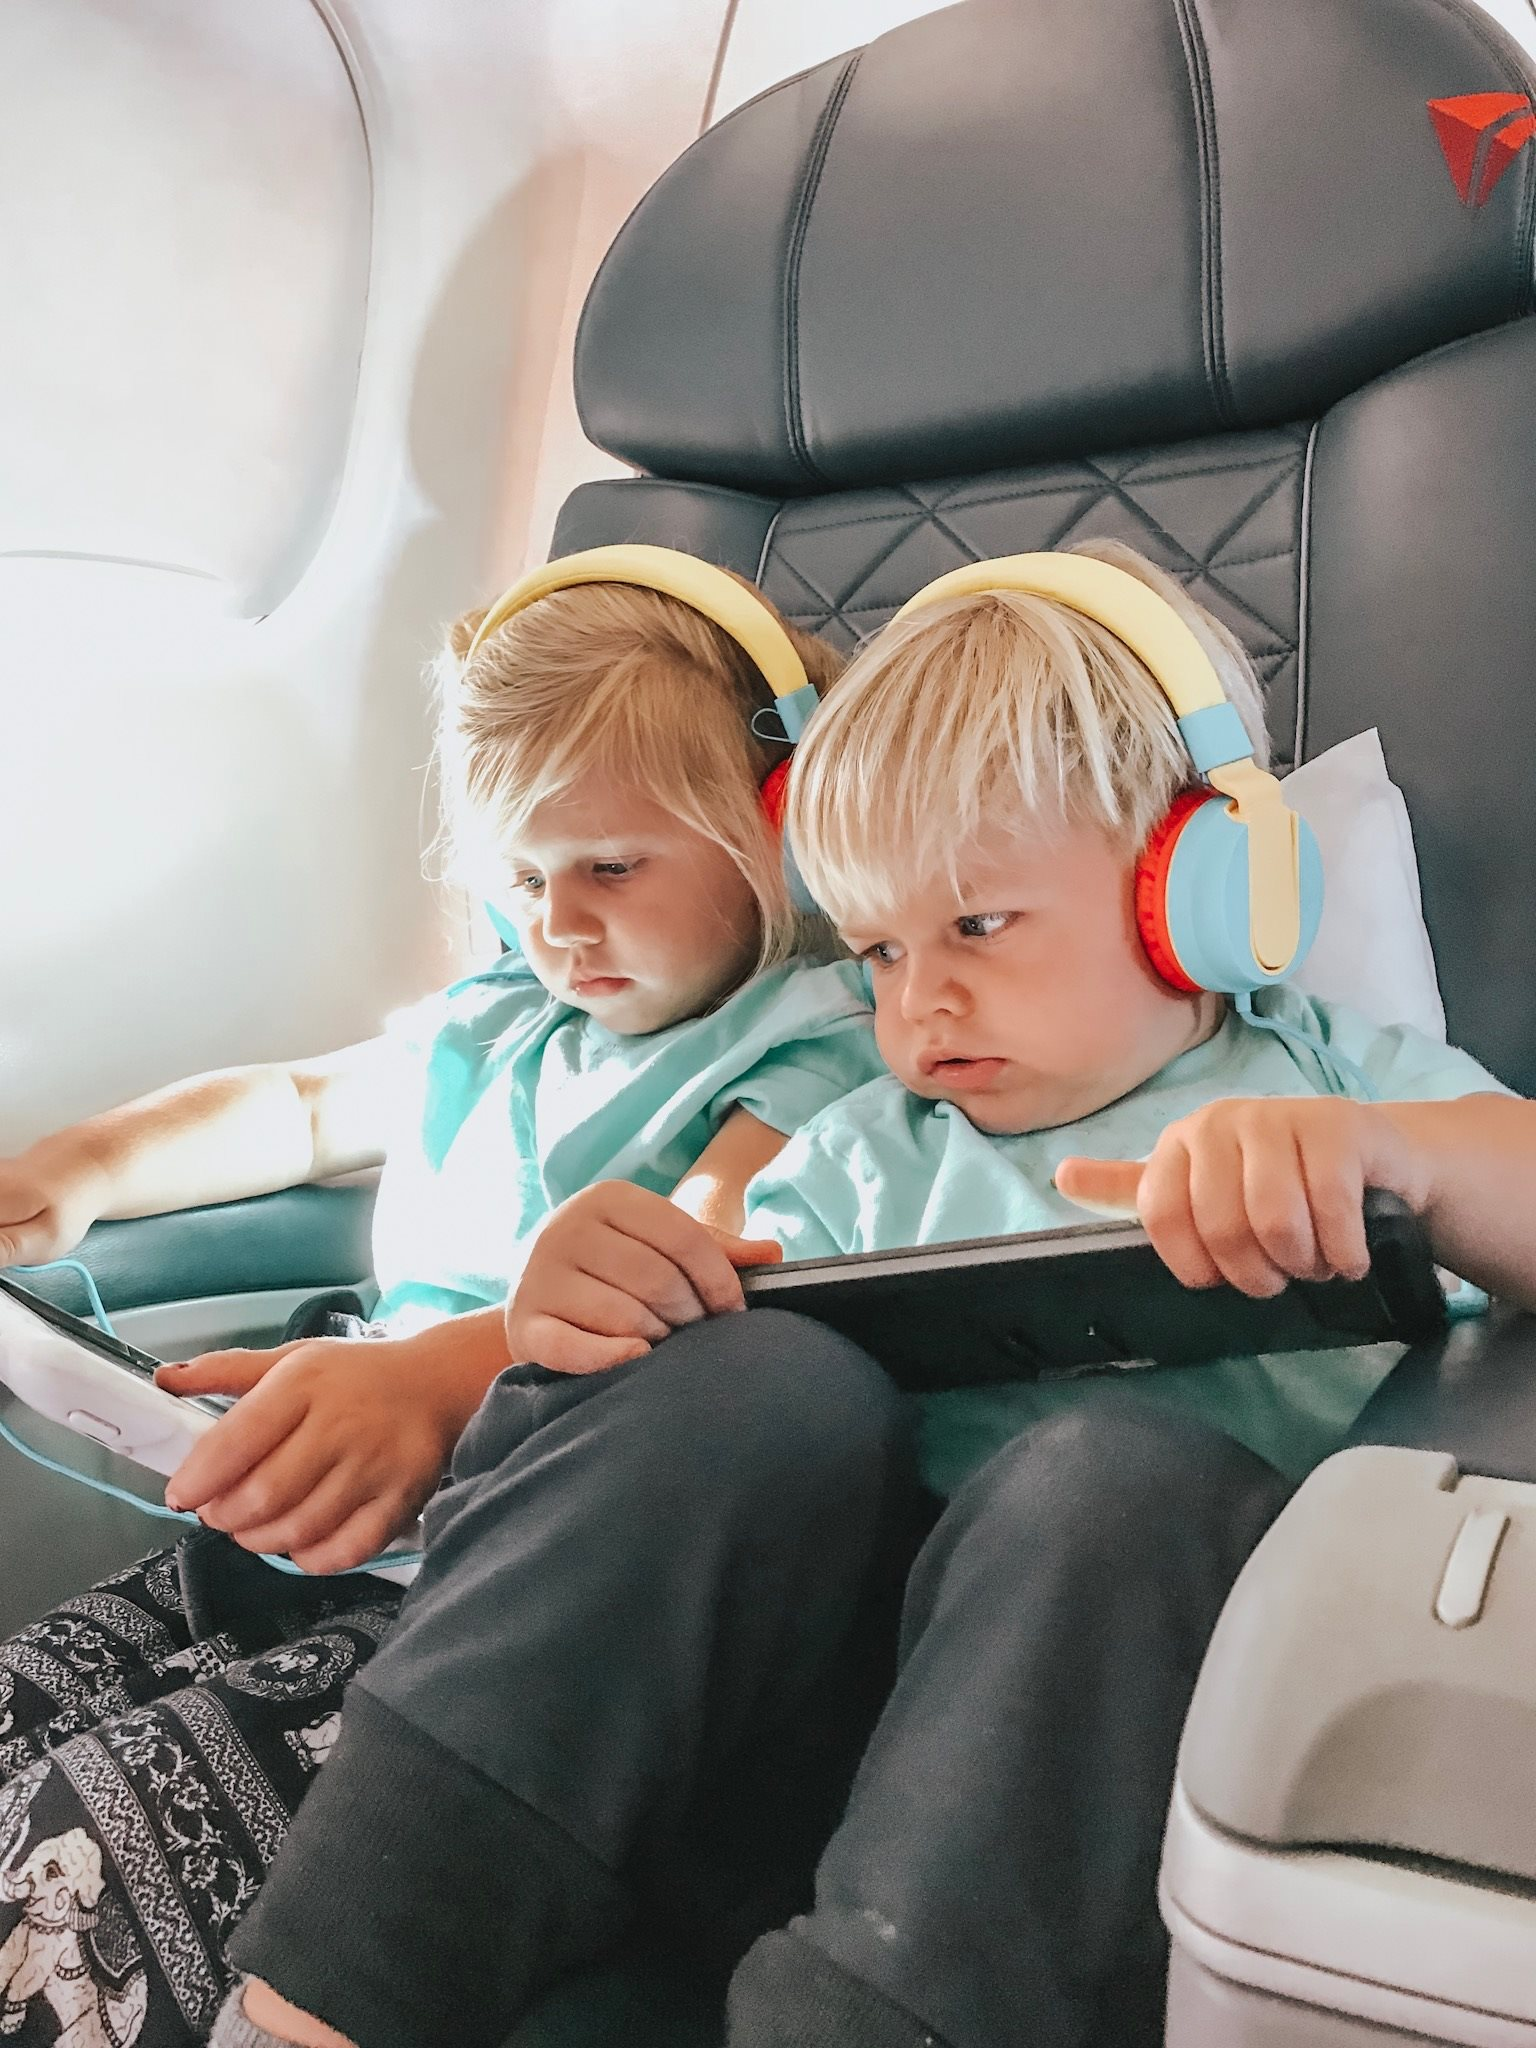 The Kids with their headphones & ipads playing games.